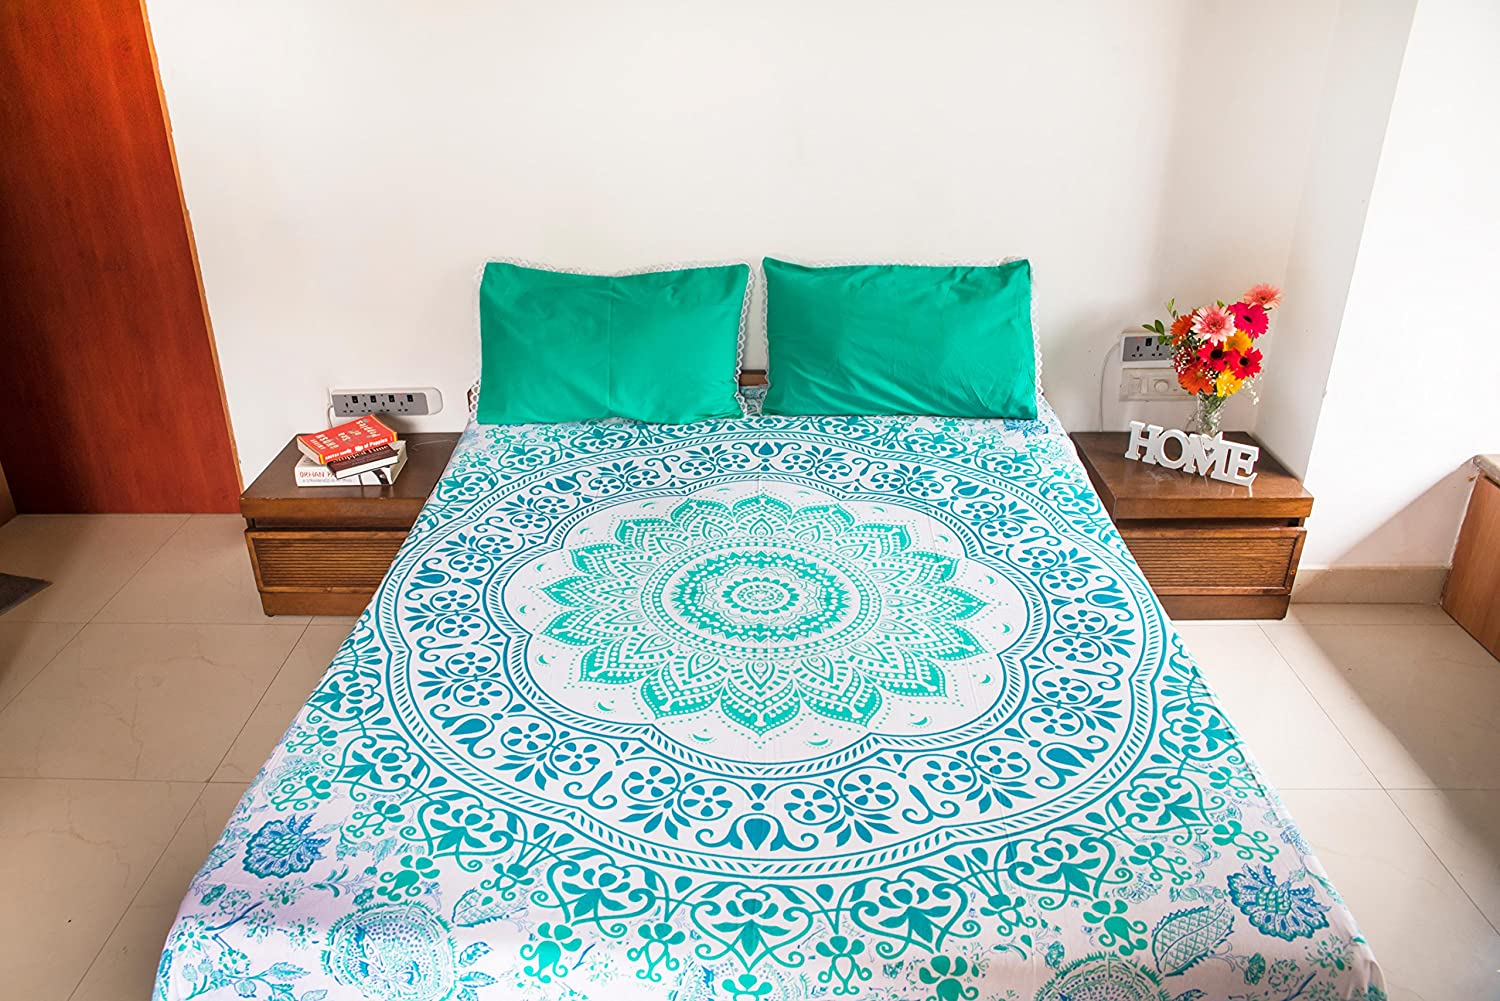 Decorative Mandala Bed Cover Sheet Indian Hippie Bohemian Queen Tapestry Throw